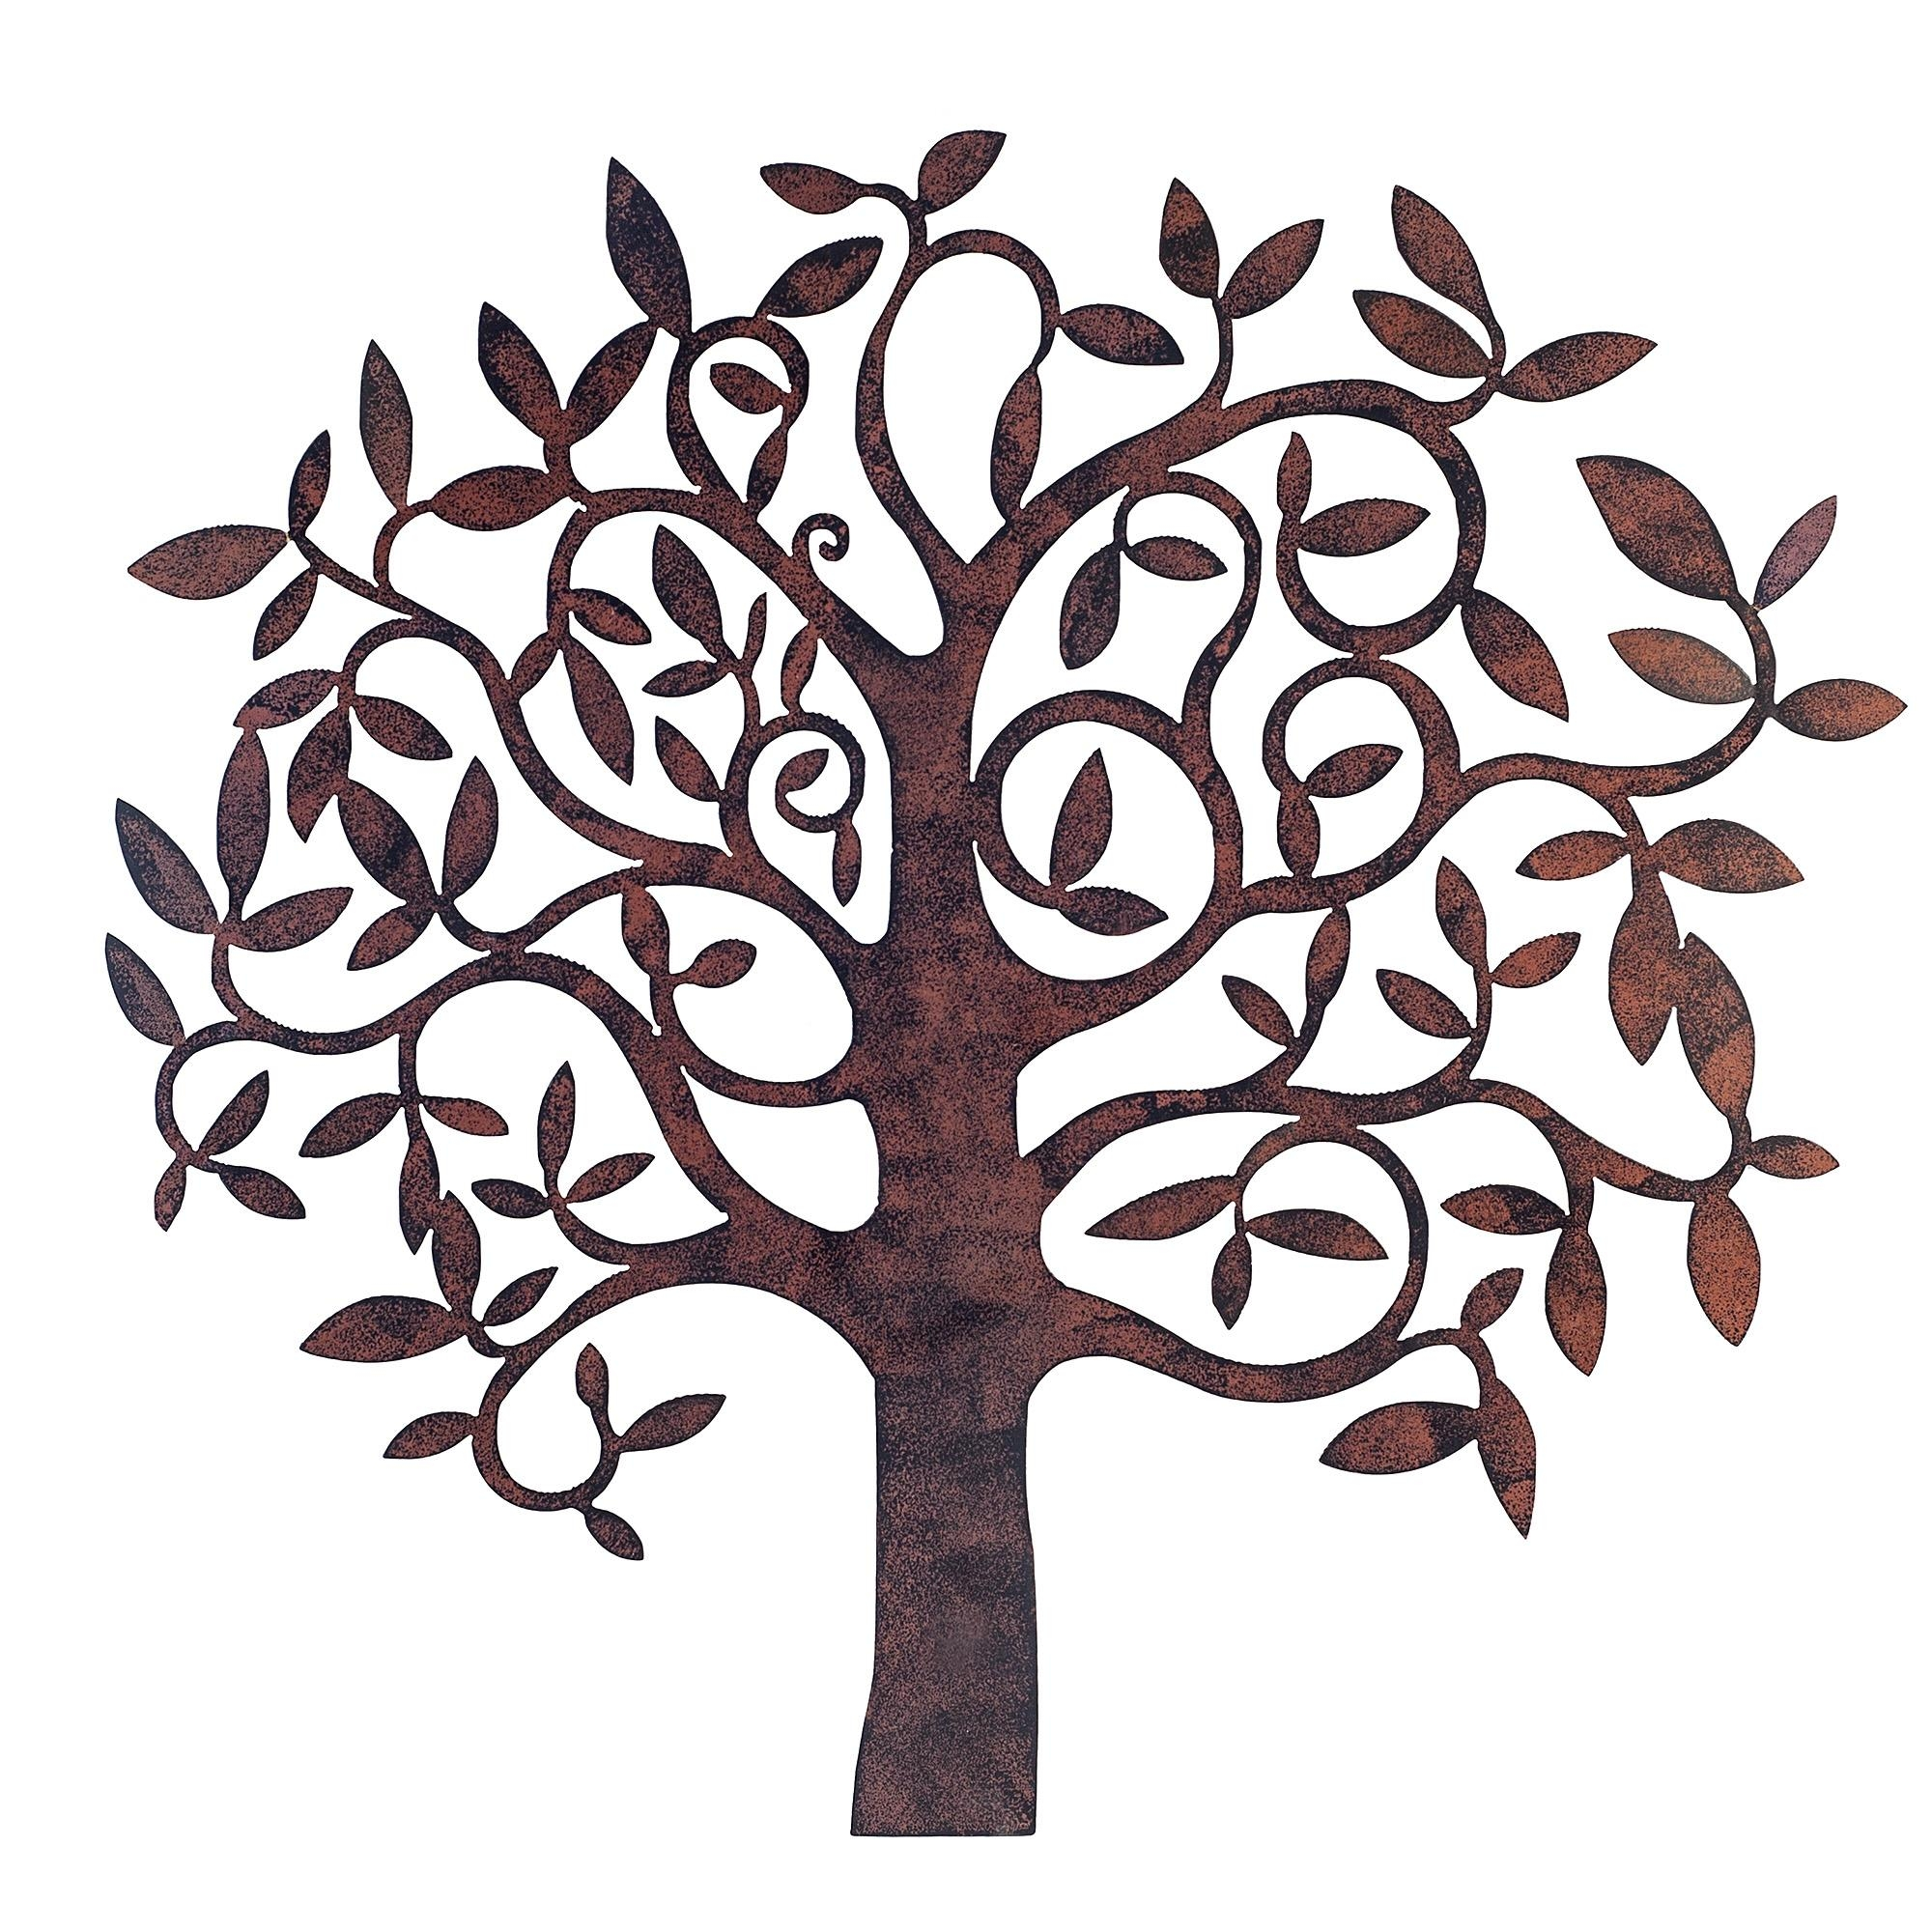 Wall Art Ideas Design : Trees Metal Garden Wall Art White for Large Metal Wall Art for Outdoor